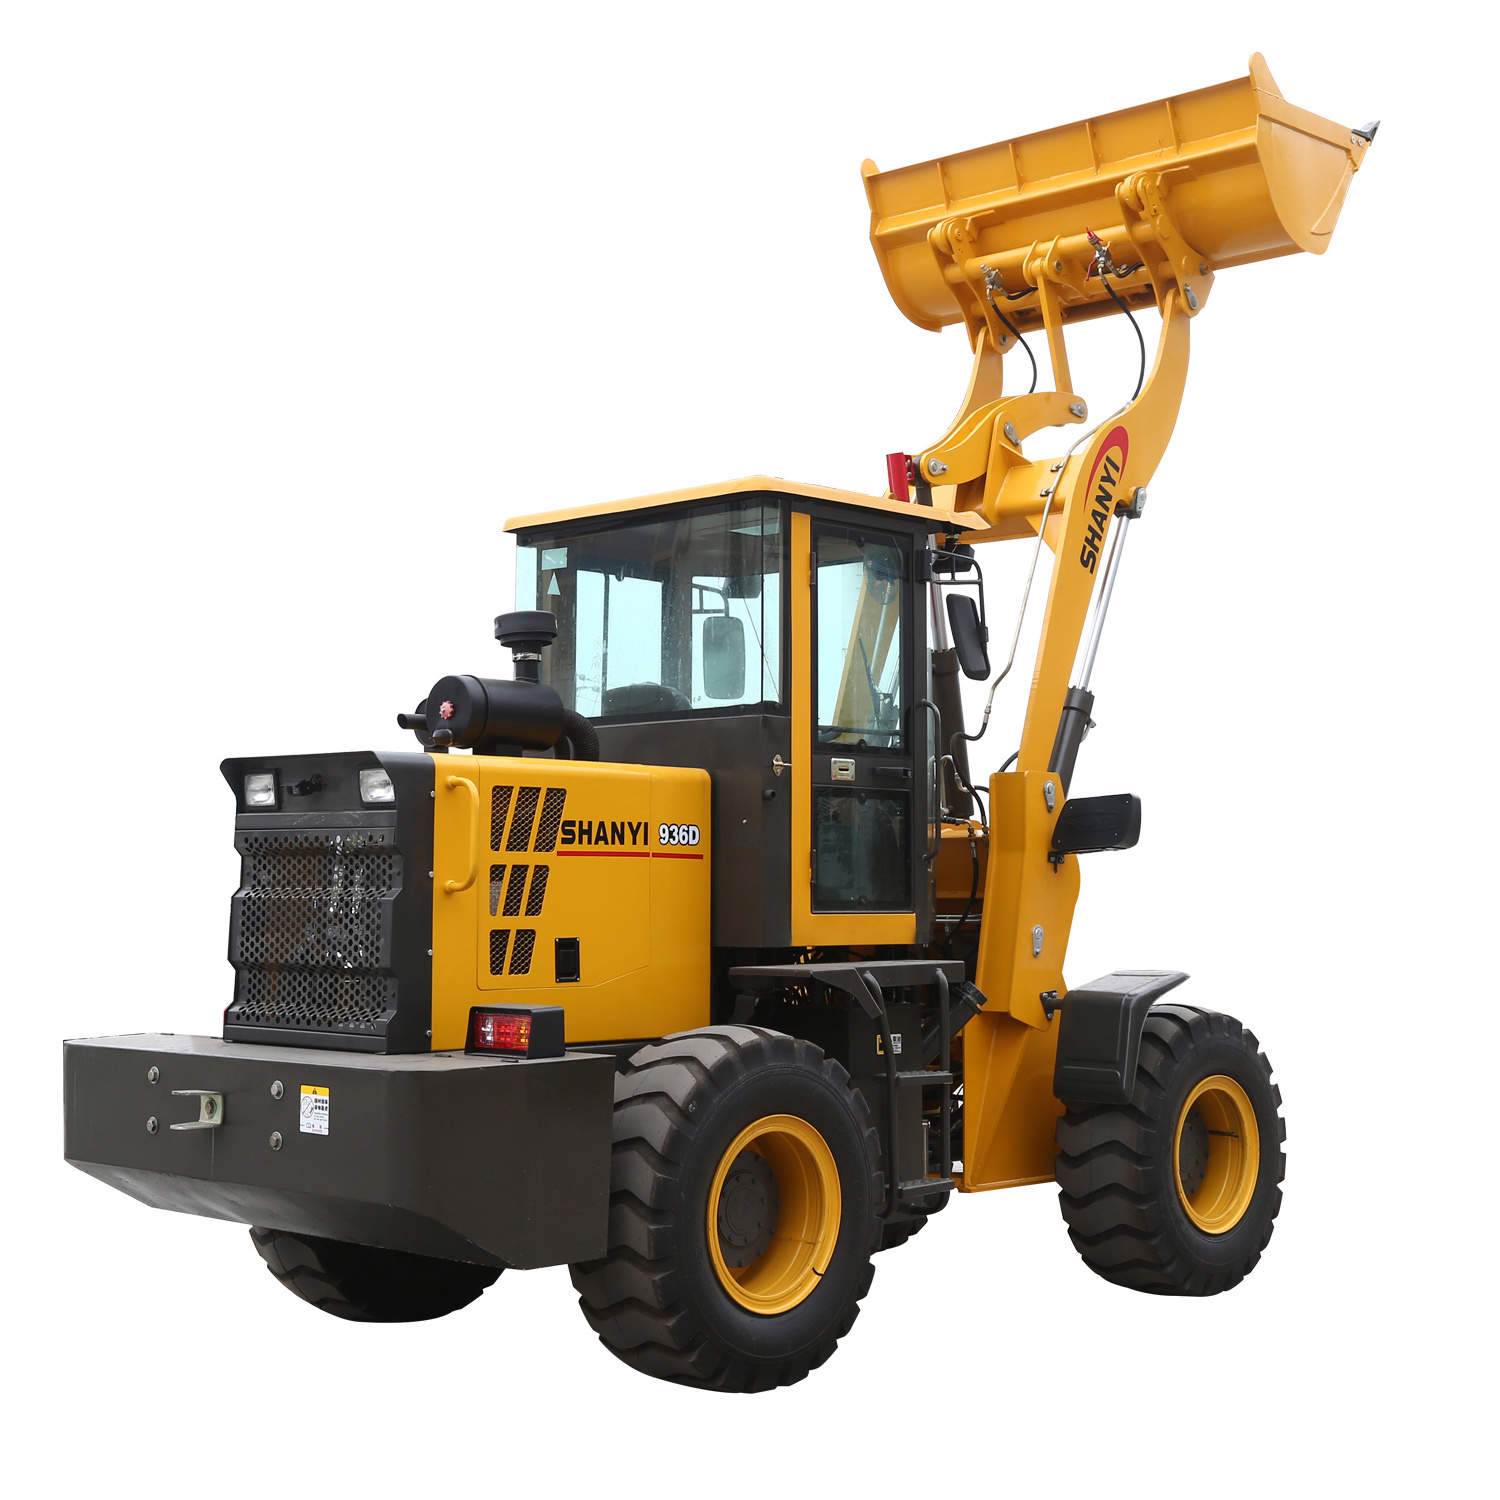 China 12 Ton Wheel Loaders Manufacturers, Suppliers - Made